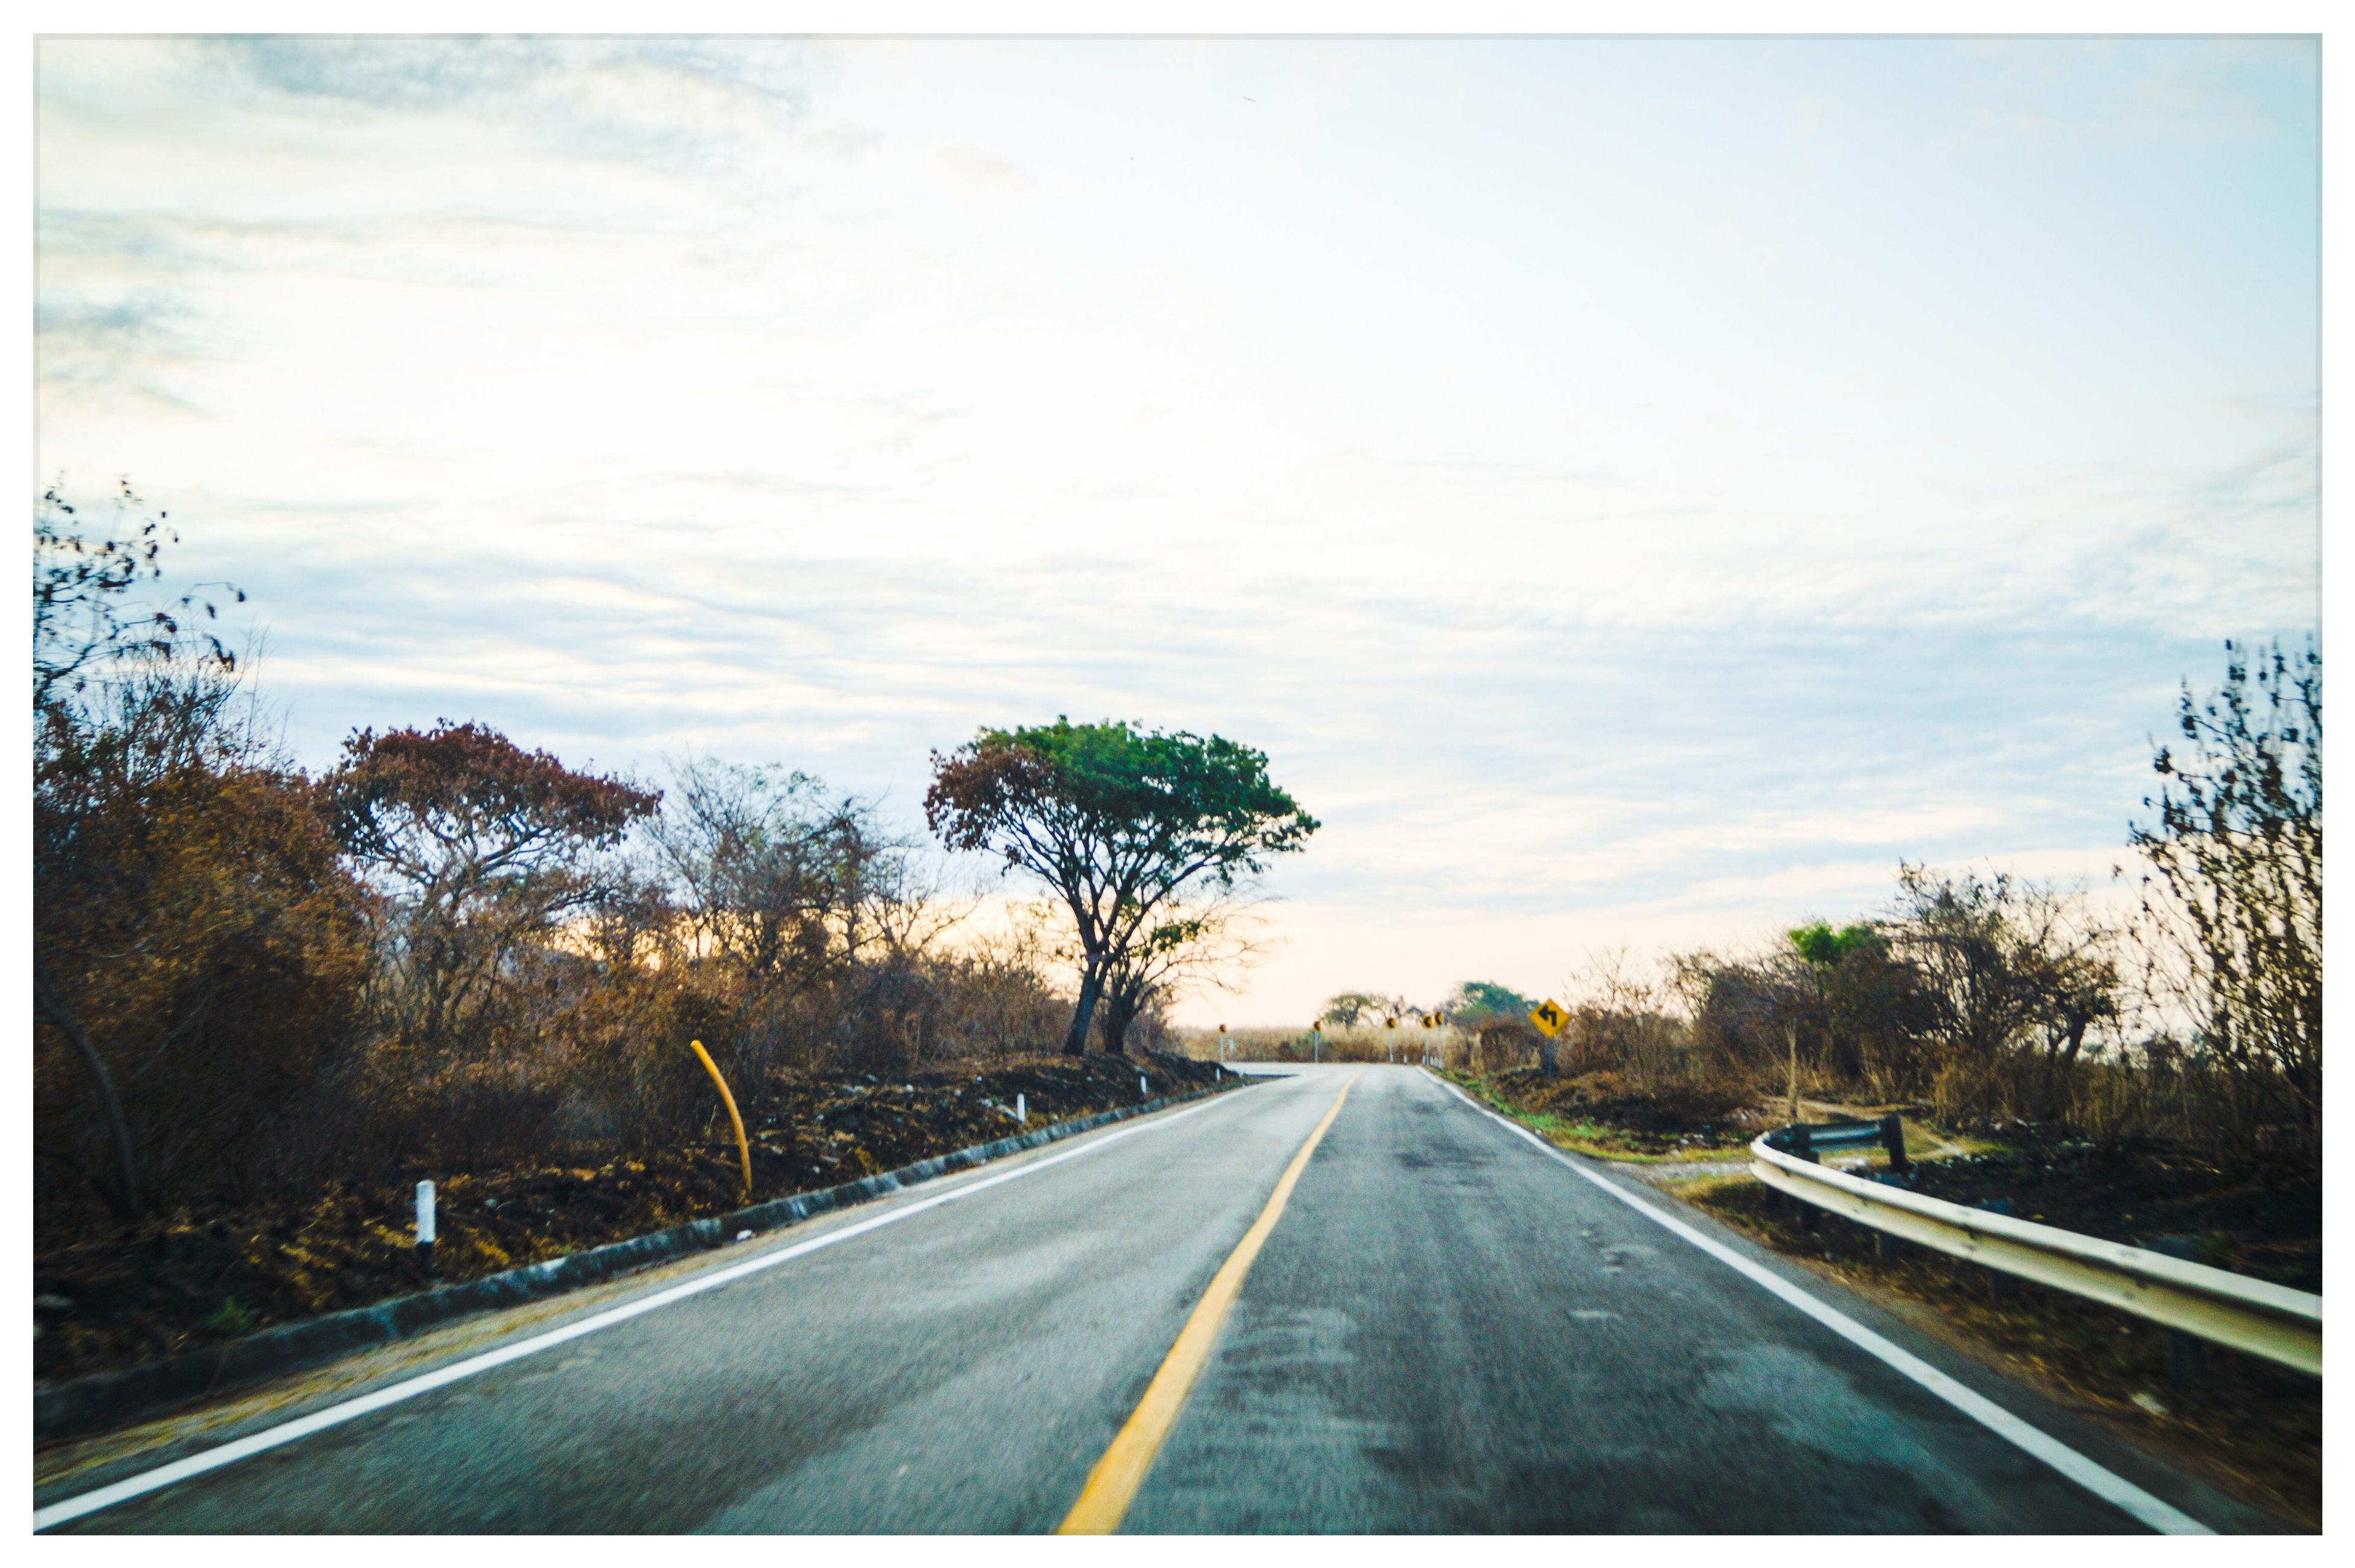 transportation, the way forward, road, diminishing perspective, road marking, vanishing point, sky, transfer print, tree, cloud - sky, country road, car, auto post production filter, highway, cloud, long, empty road, windshield, nature, cloudy